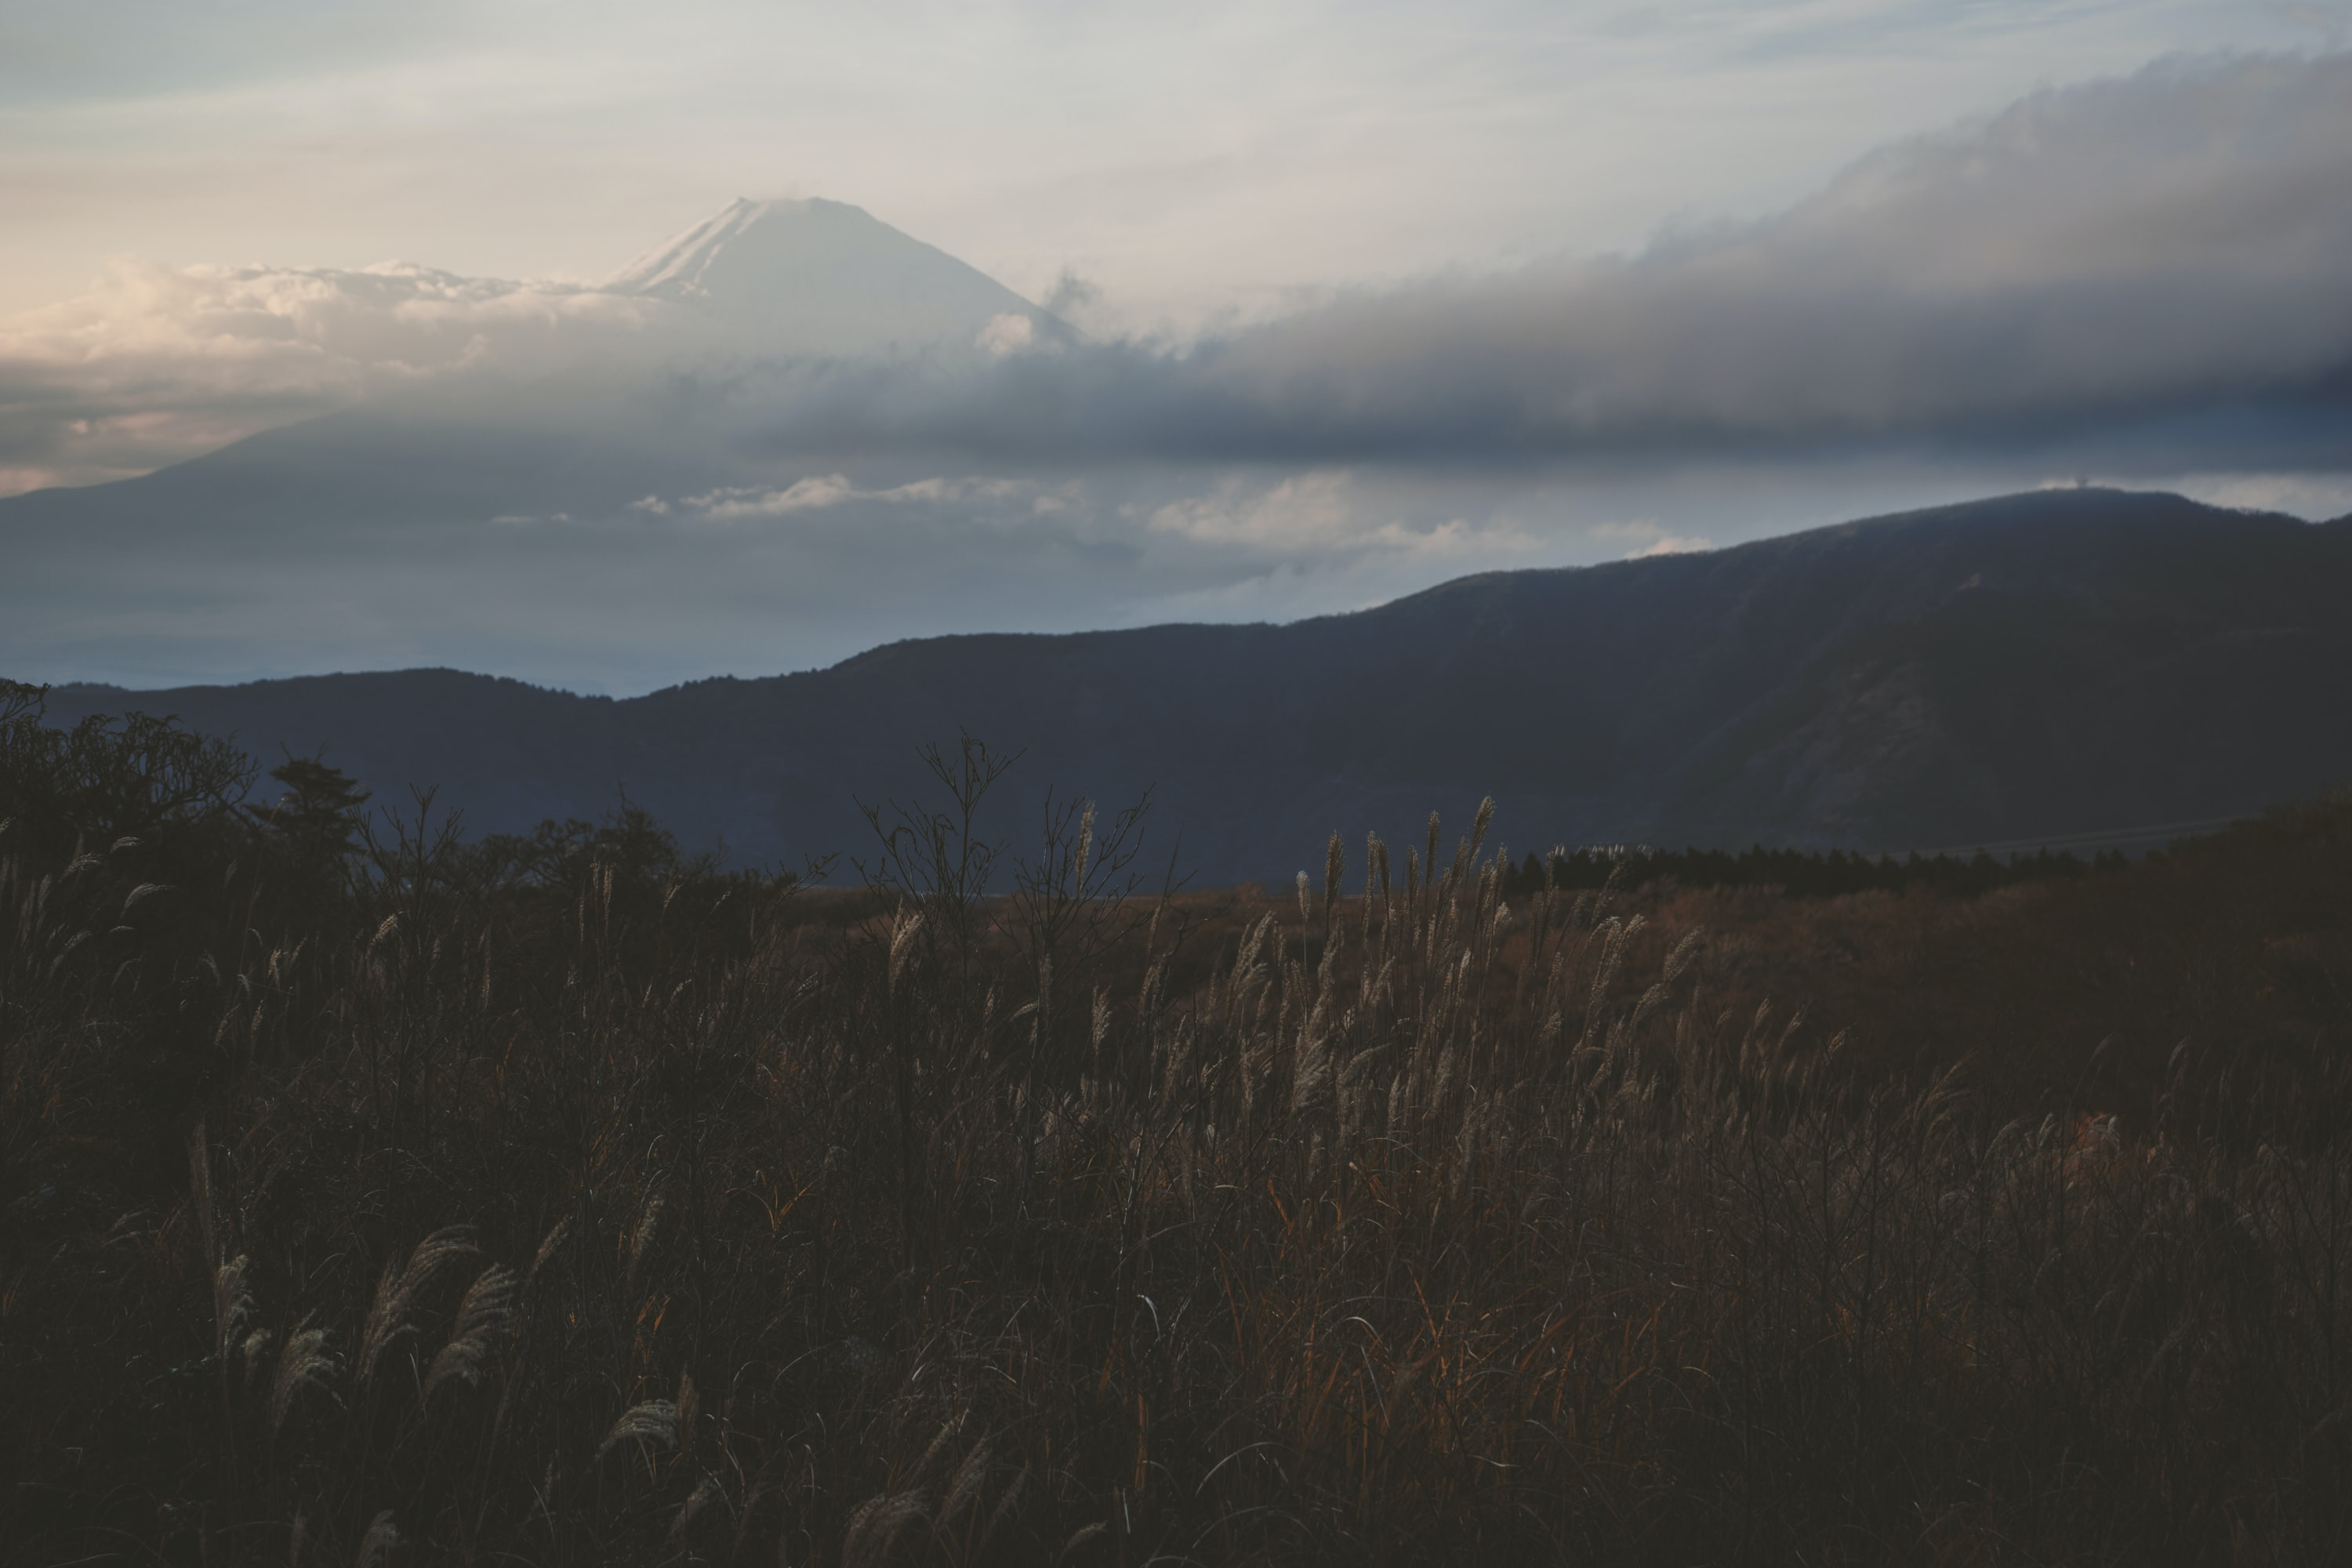 A dim shot of a grassy field with a high mountain emerging from the clouds